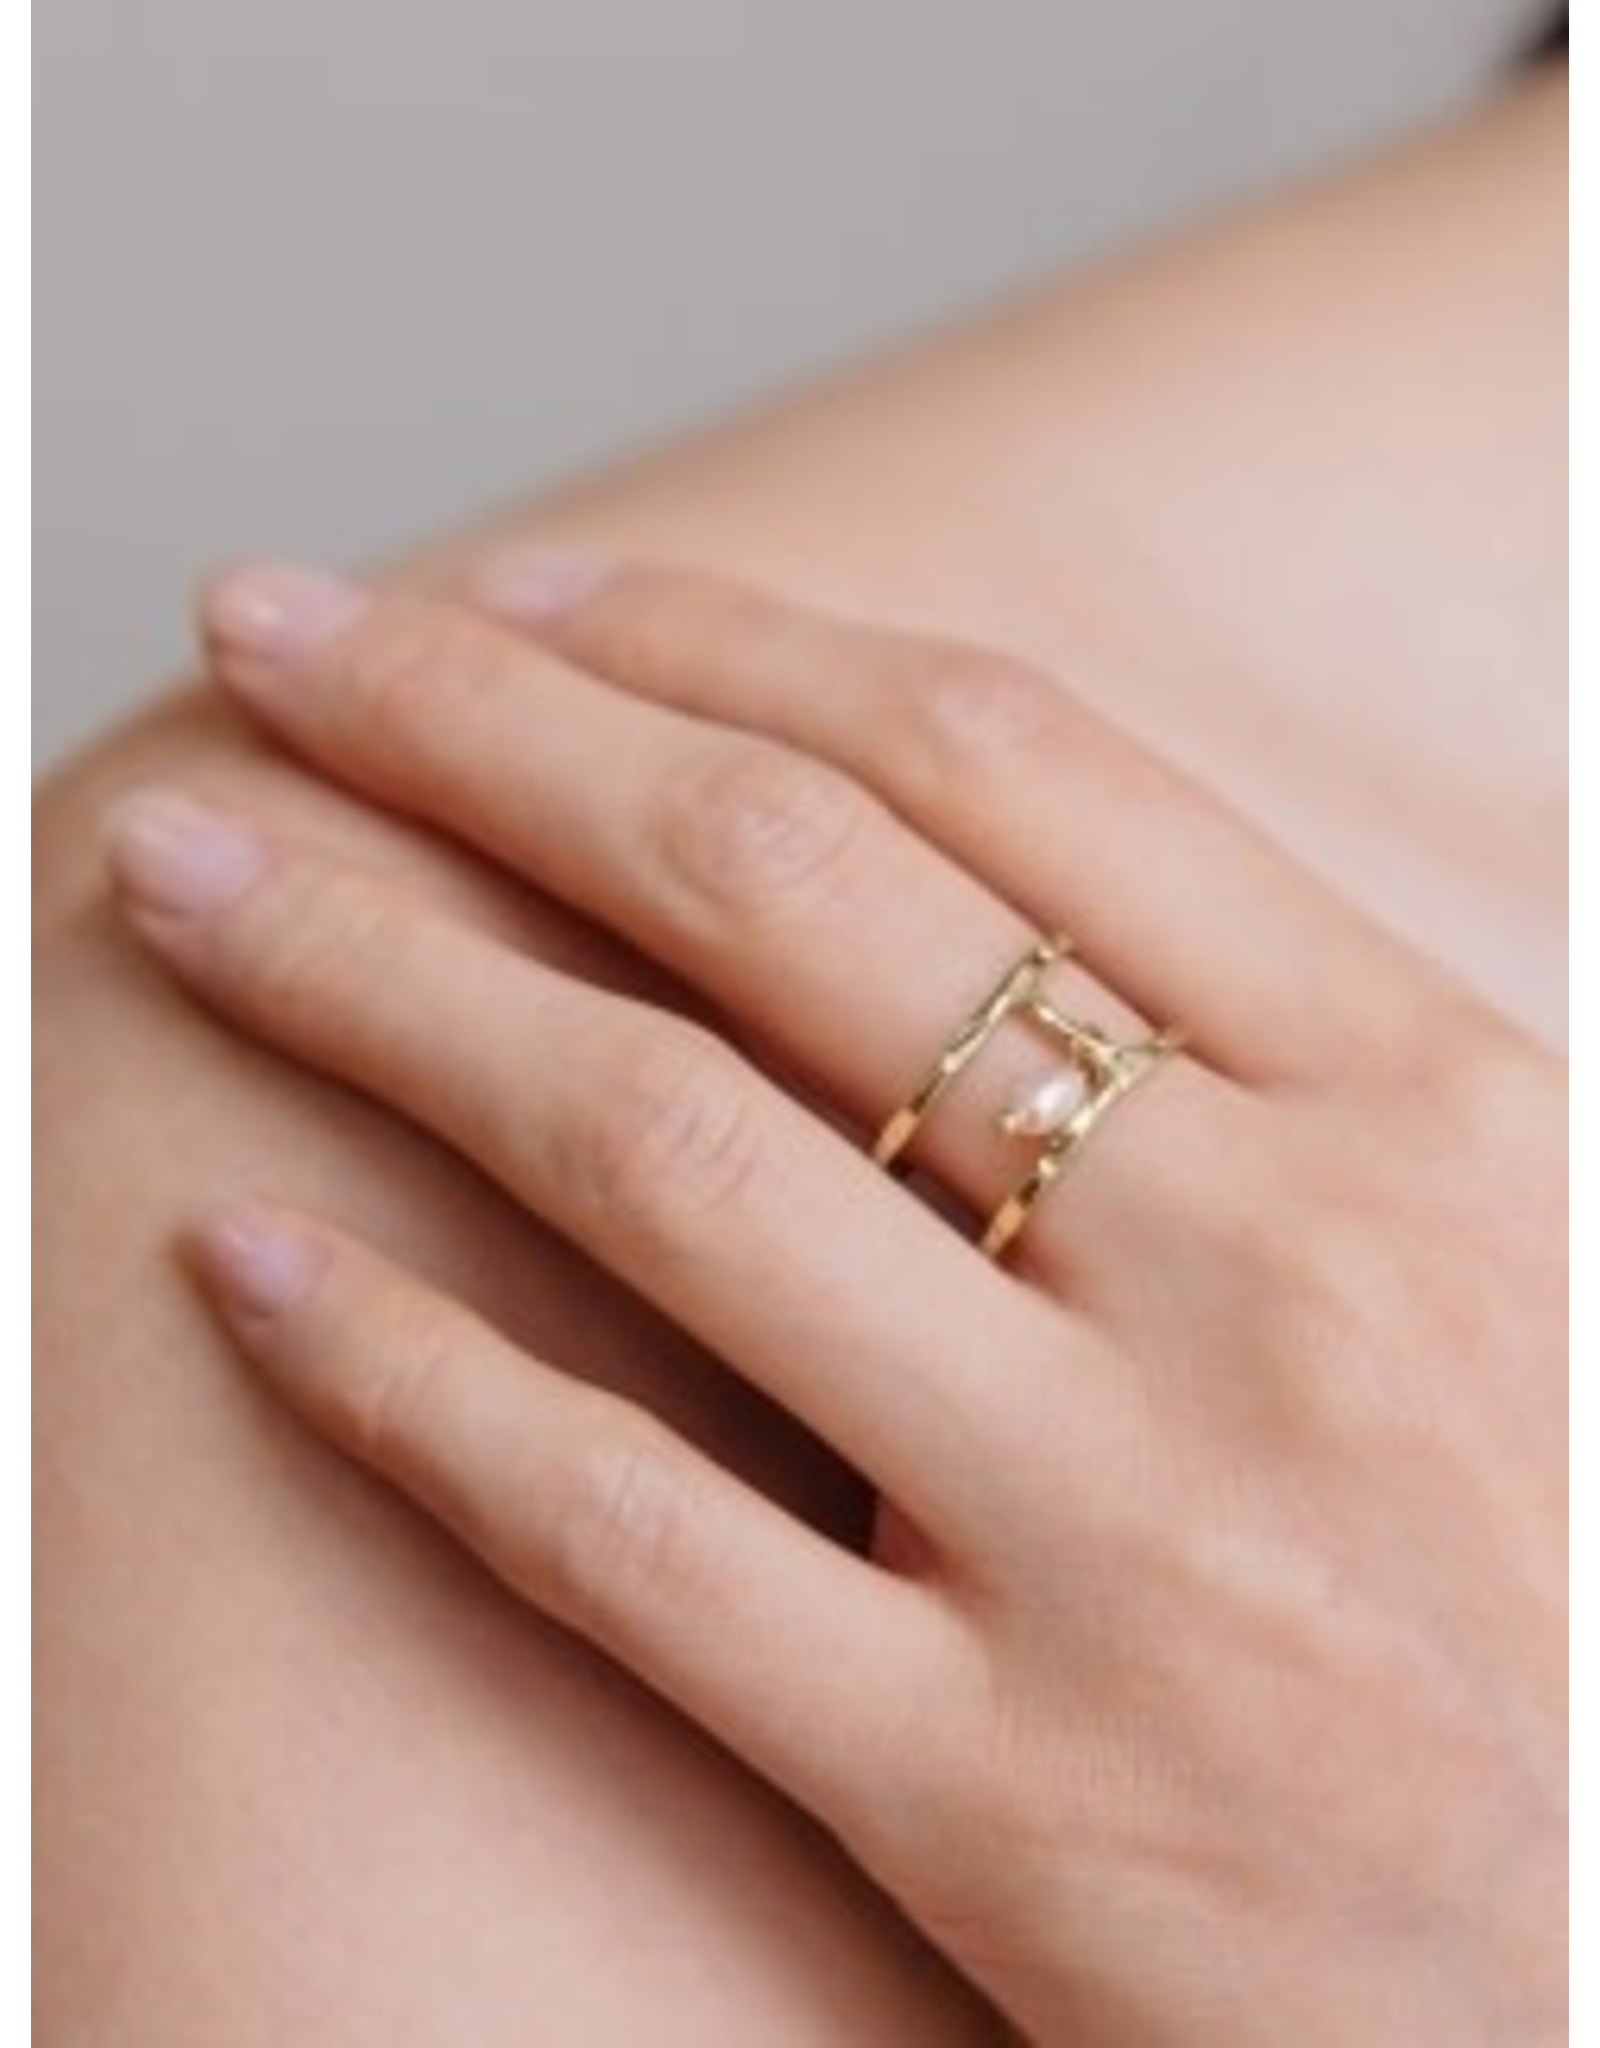 Kelly Bead Ring with Pearl, India